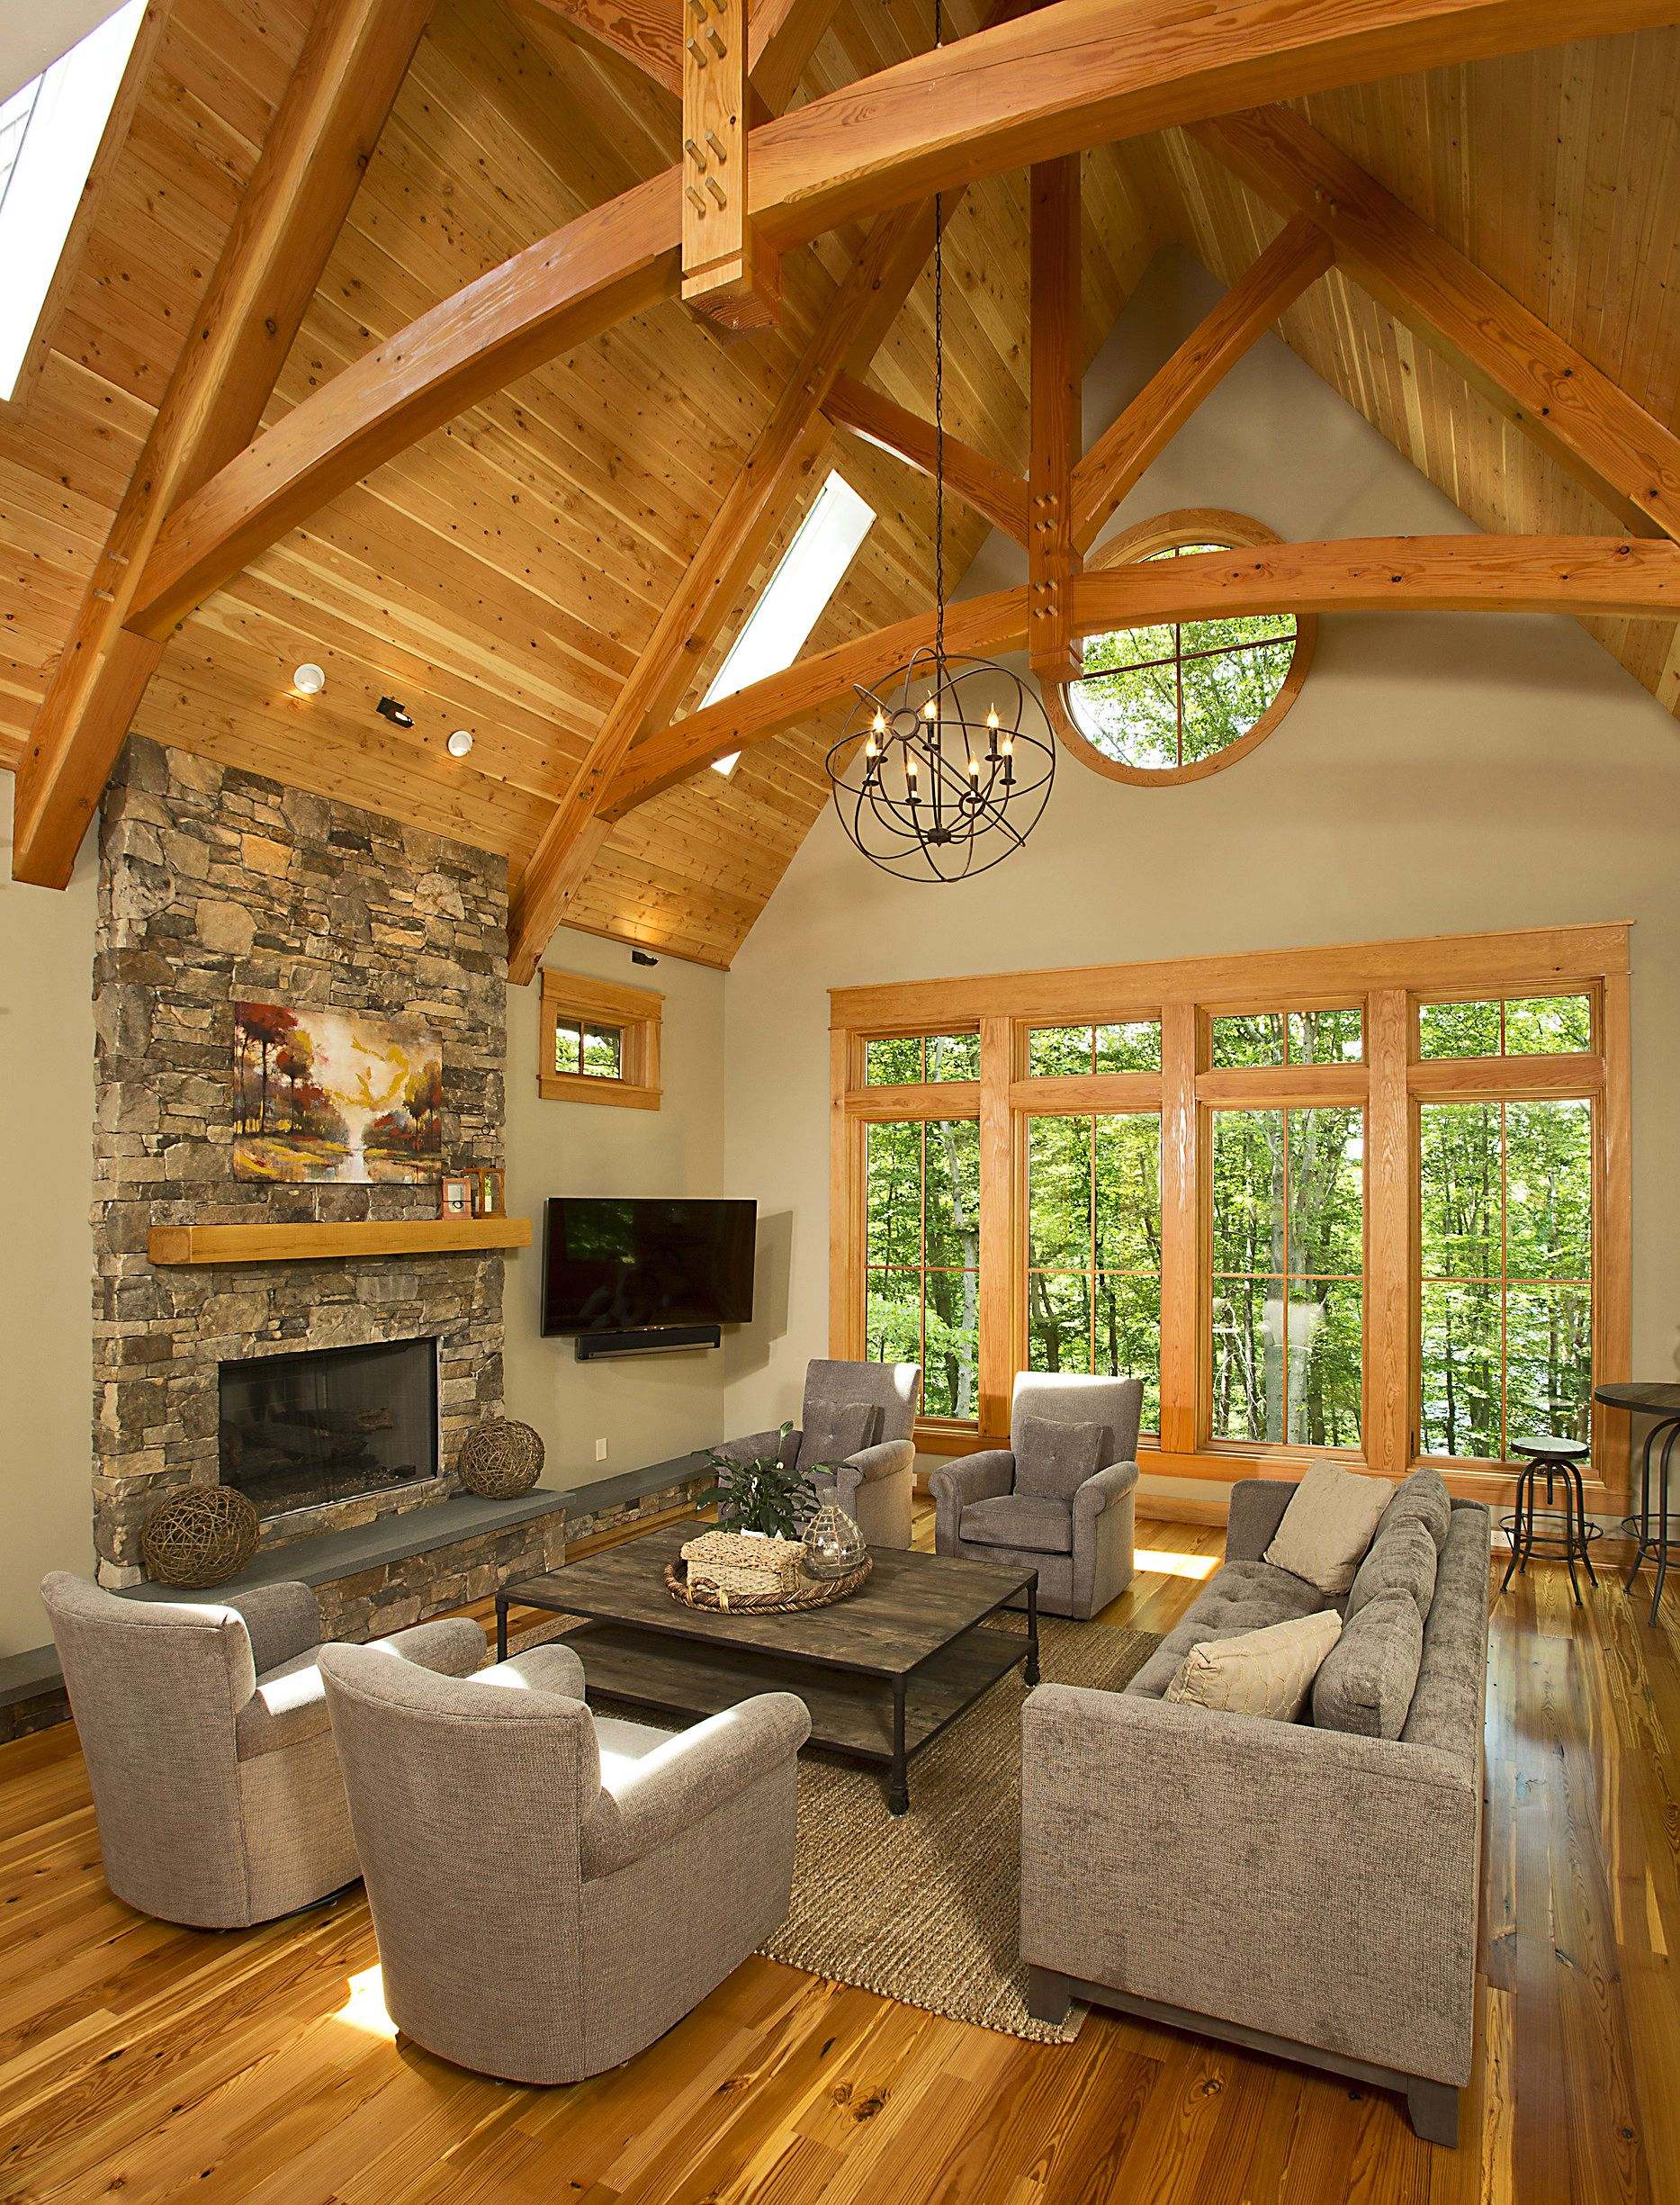 Timber frame timber frame home interiors new energy for Timber frame home interiors